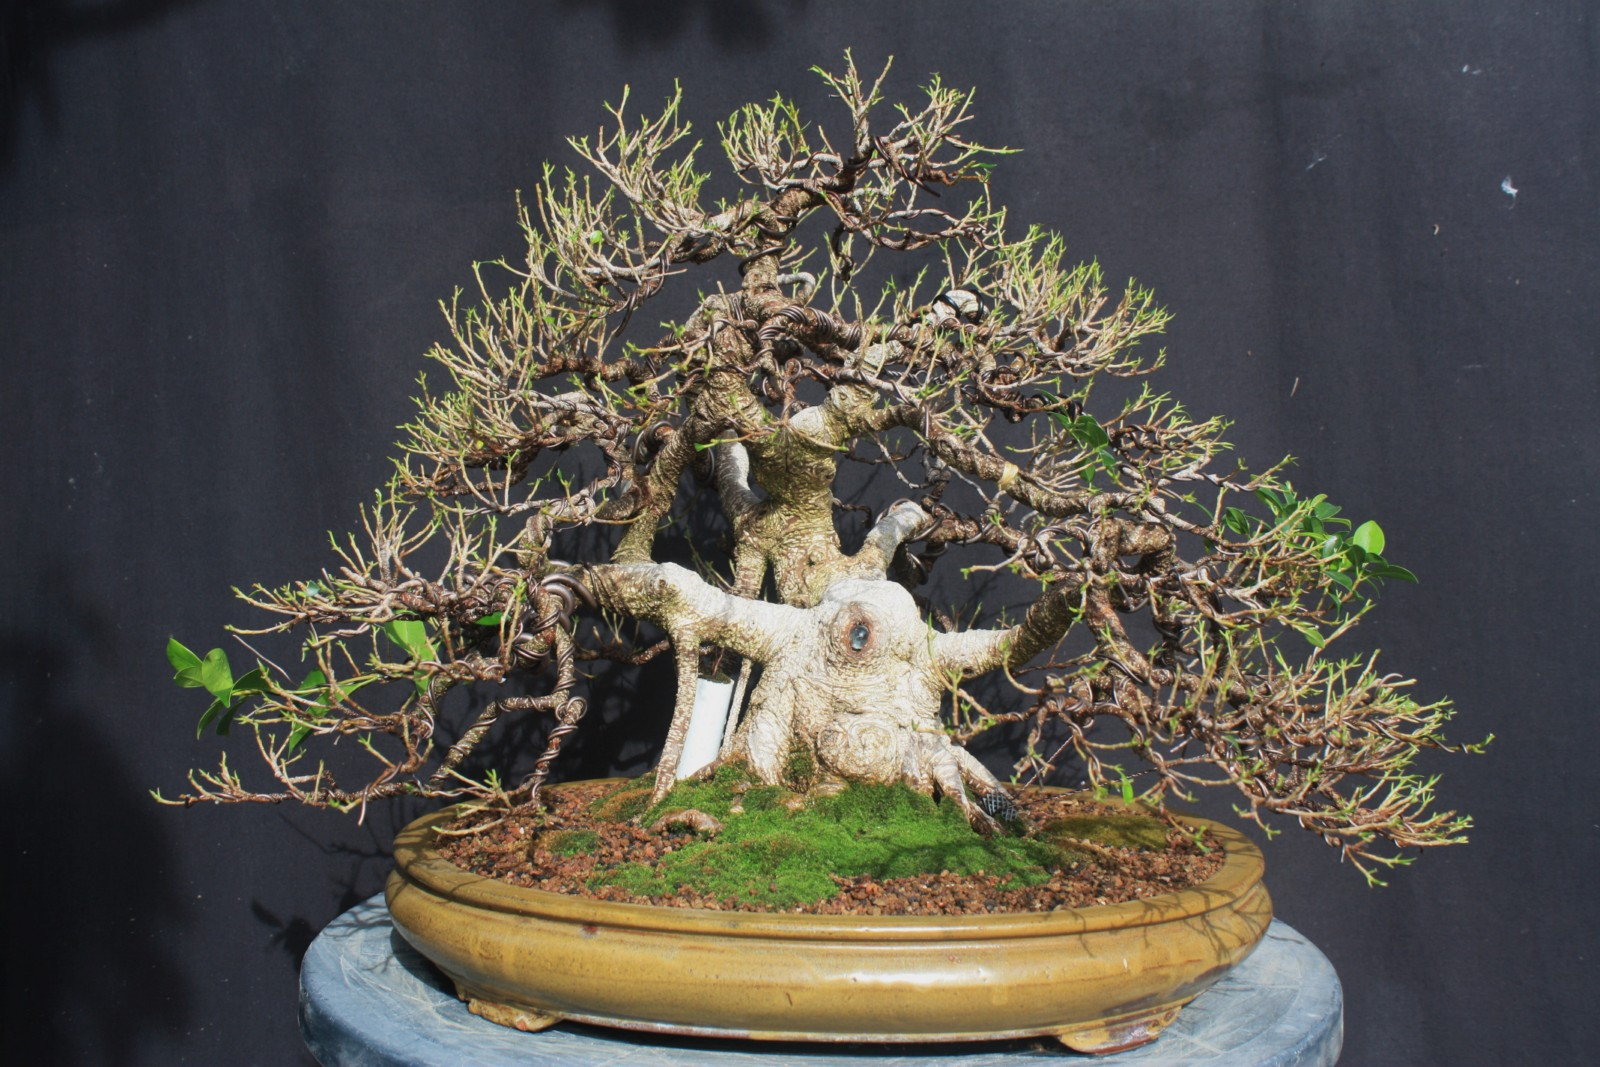 ficus microcarpa ginseng indoor bonsai tree cutting 1x ebay. Black Bedroom Furniture Sets. Home Design Ideas